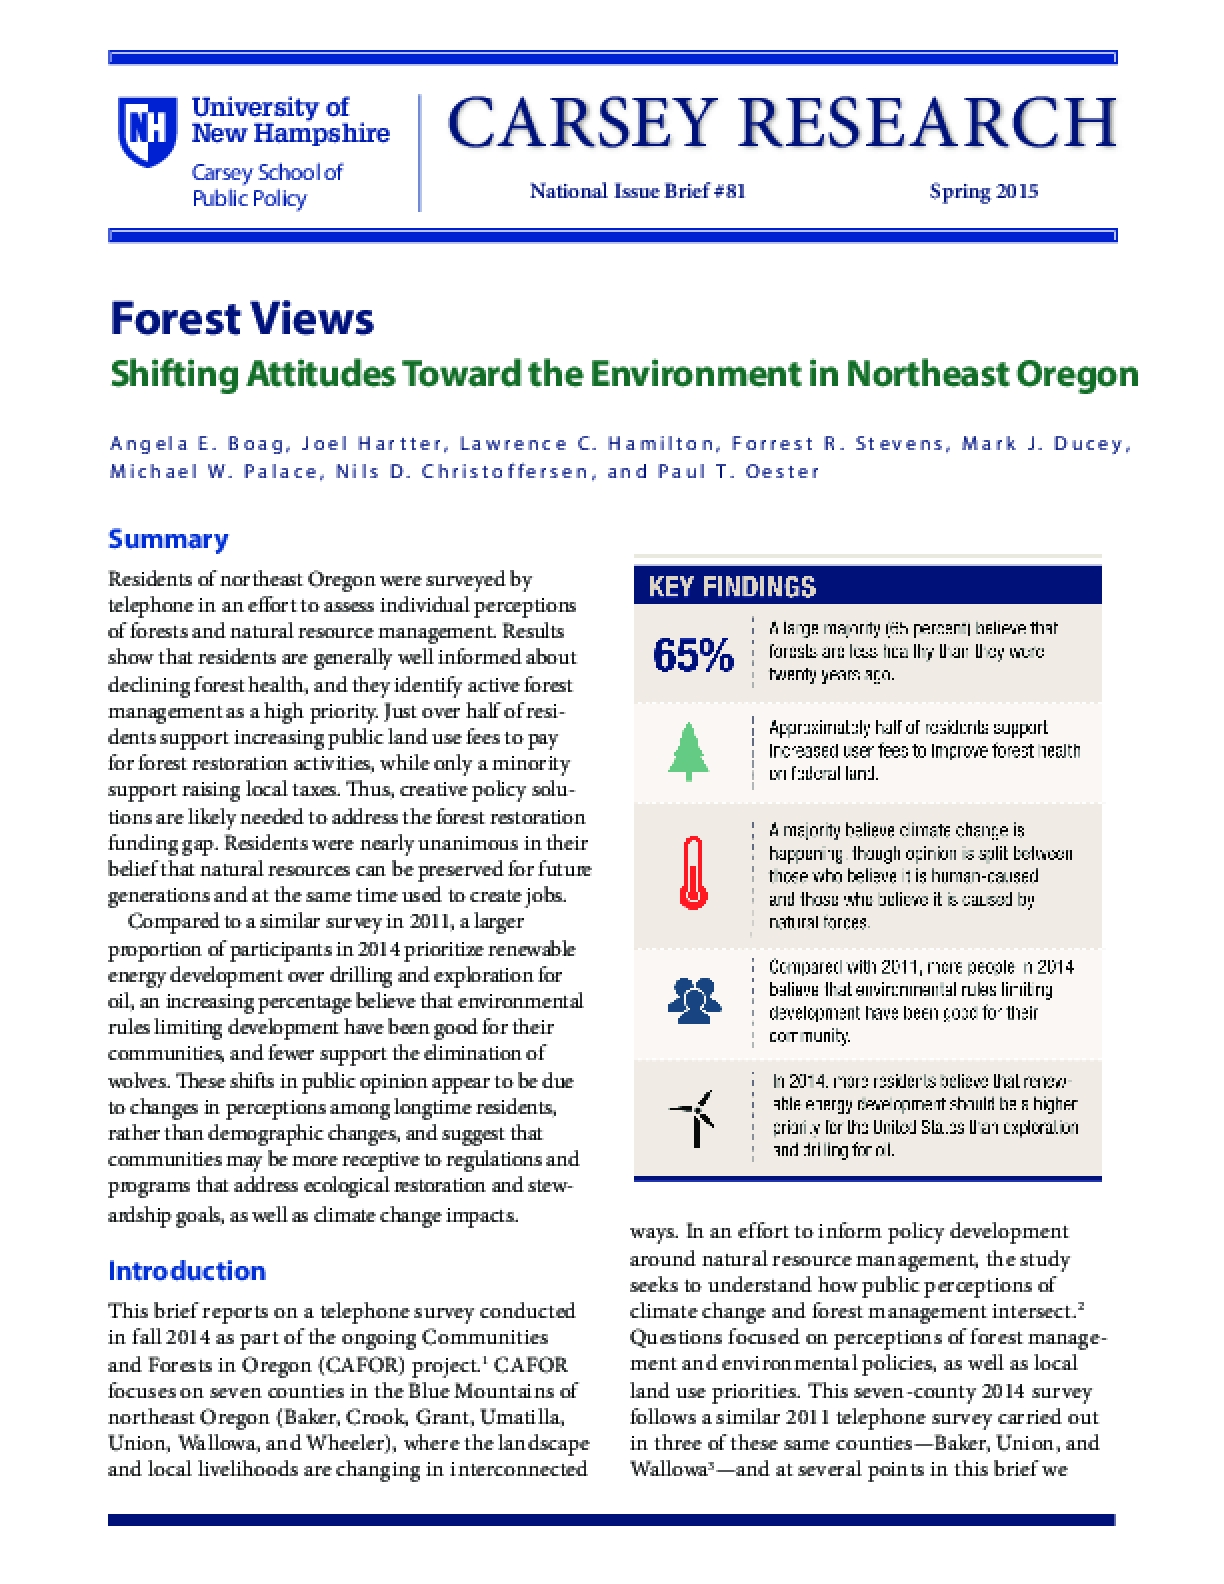 Forest Views Shifting Attitudes Toward the Environment in Northeast Oregon